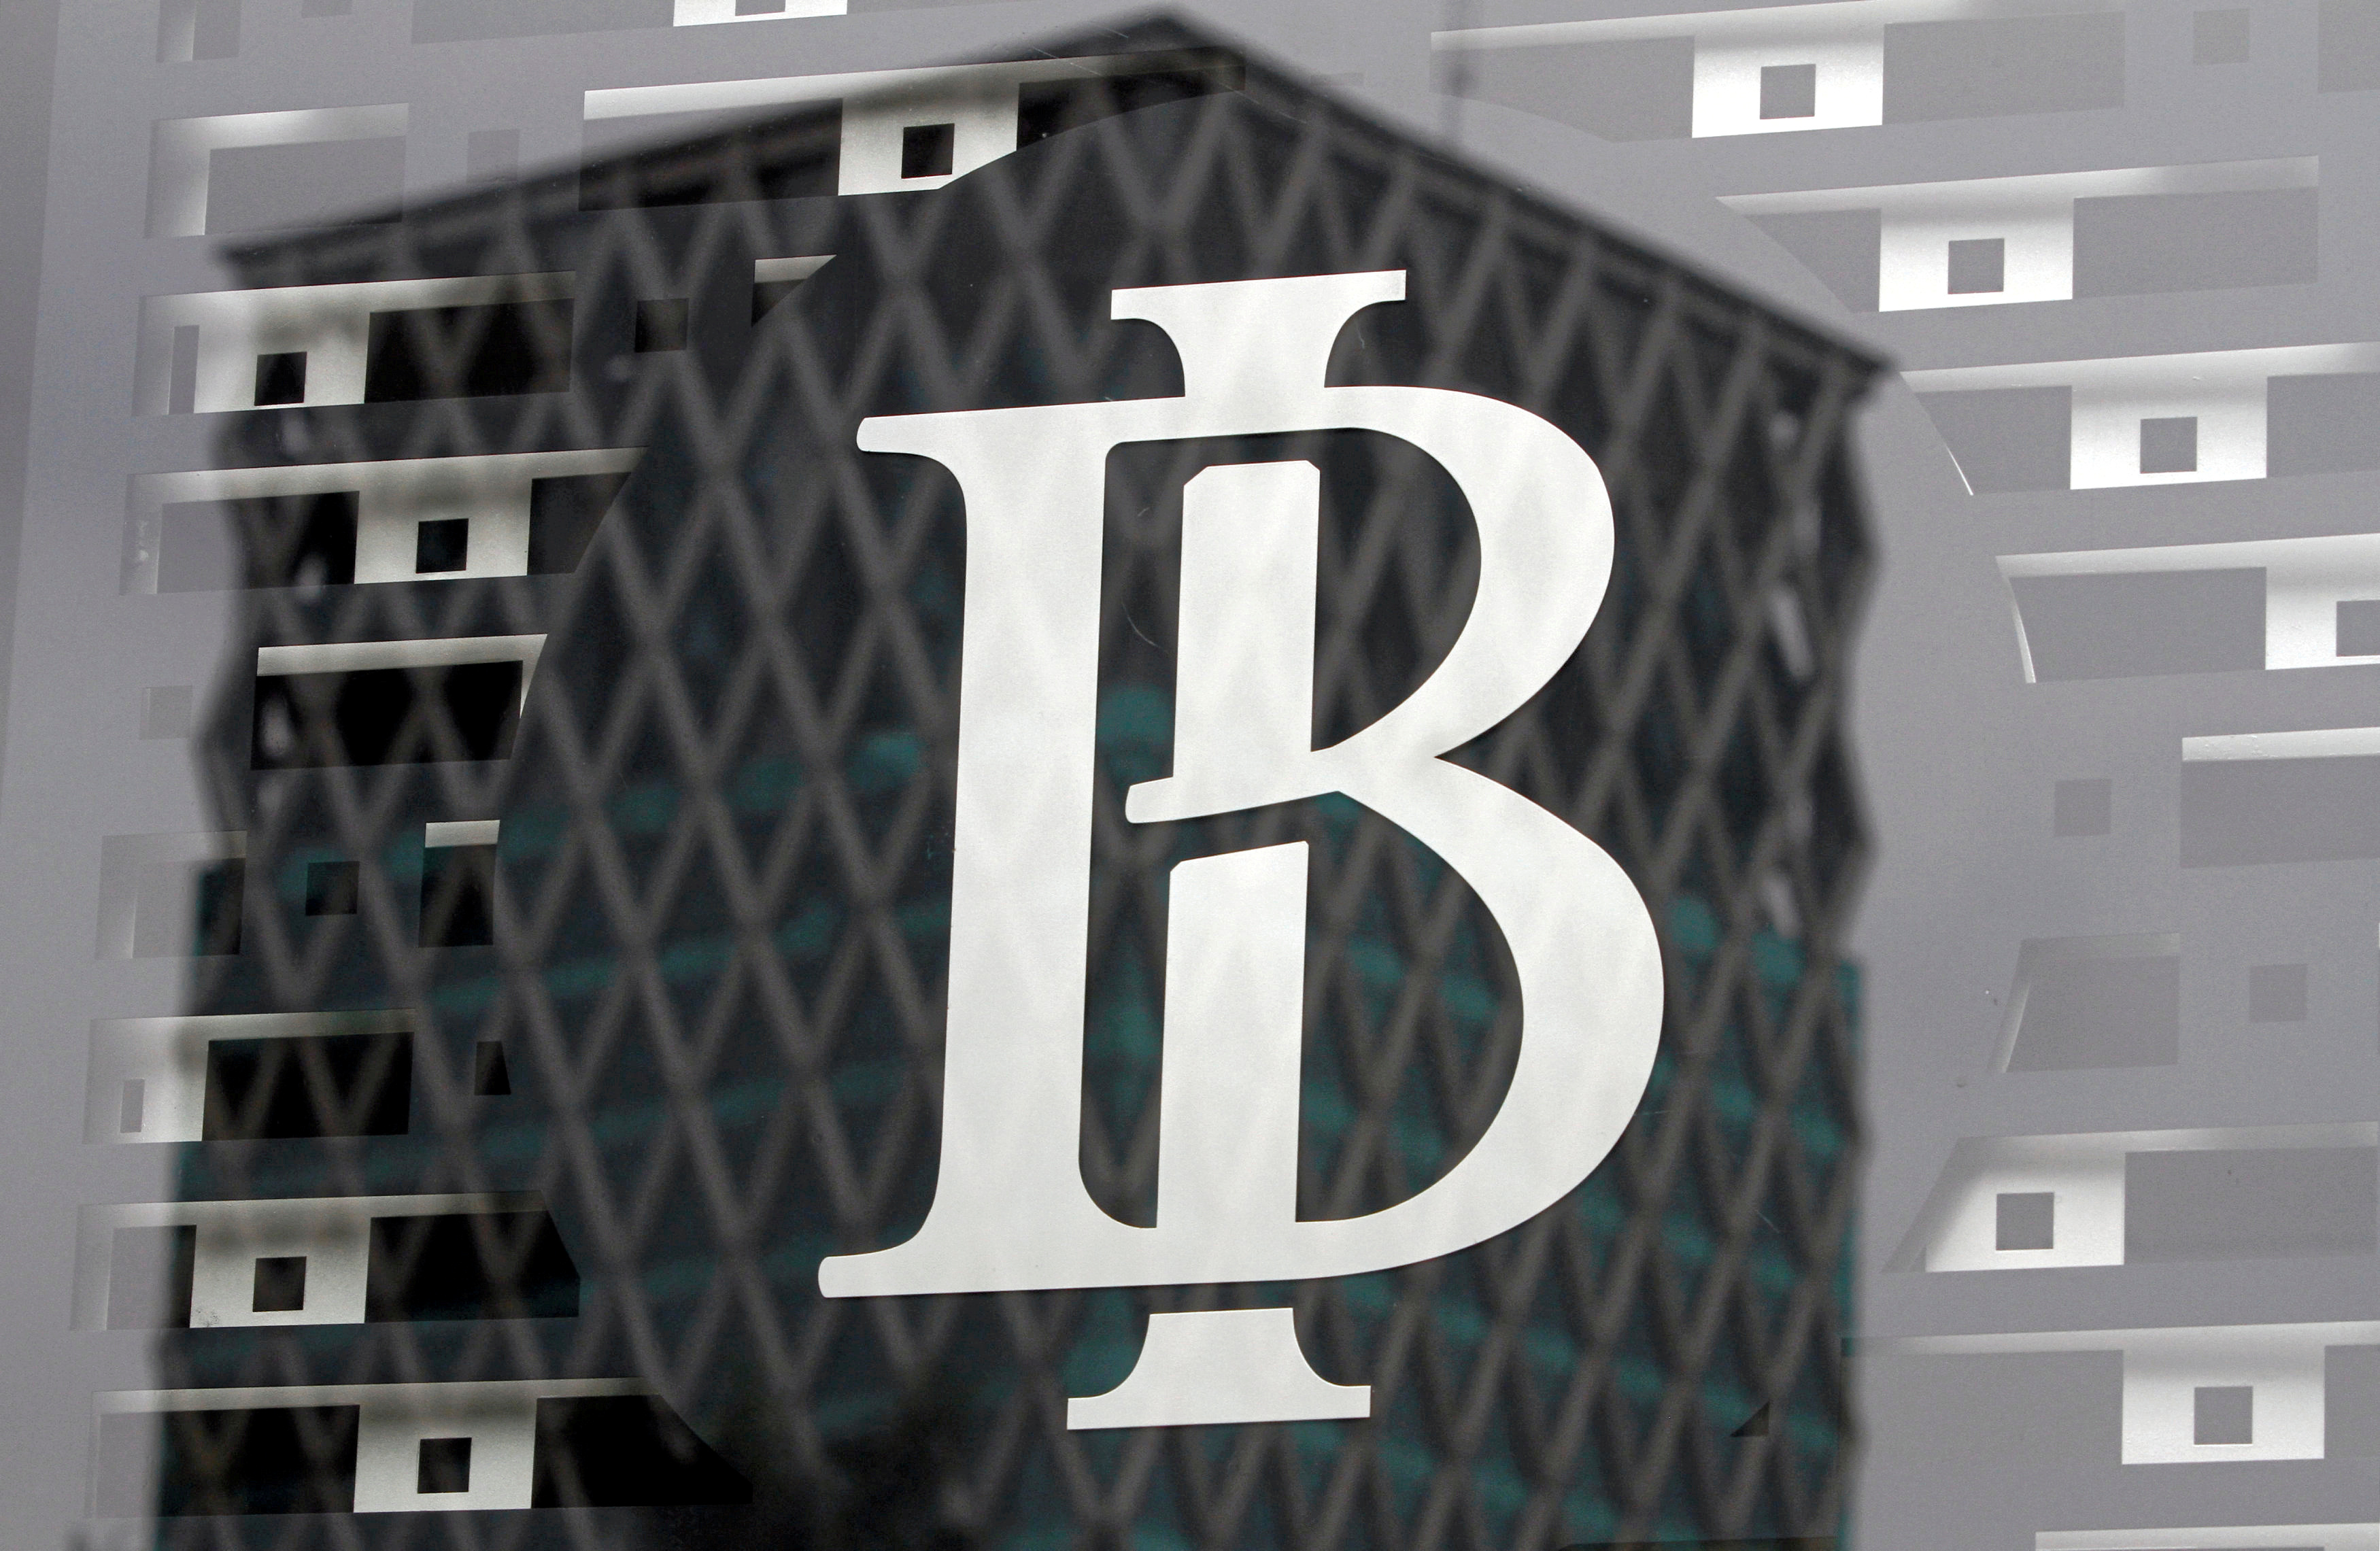 FILE PHOTO: The logo of Indonesia's central bank, Bank Indonesia, is seen on a window in the bank's lobby in Jakarta, Indonesia September 22, 2016. REUTERS/Iqro Rinaldi/File Photo